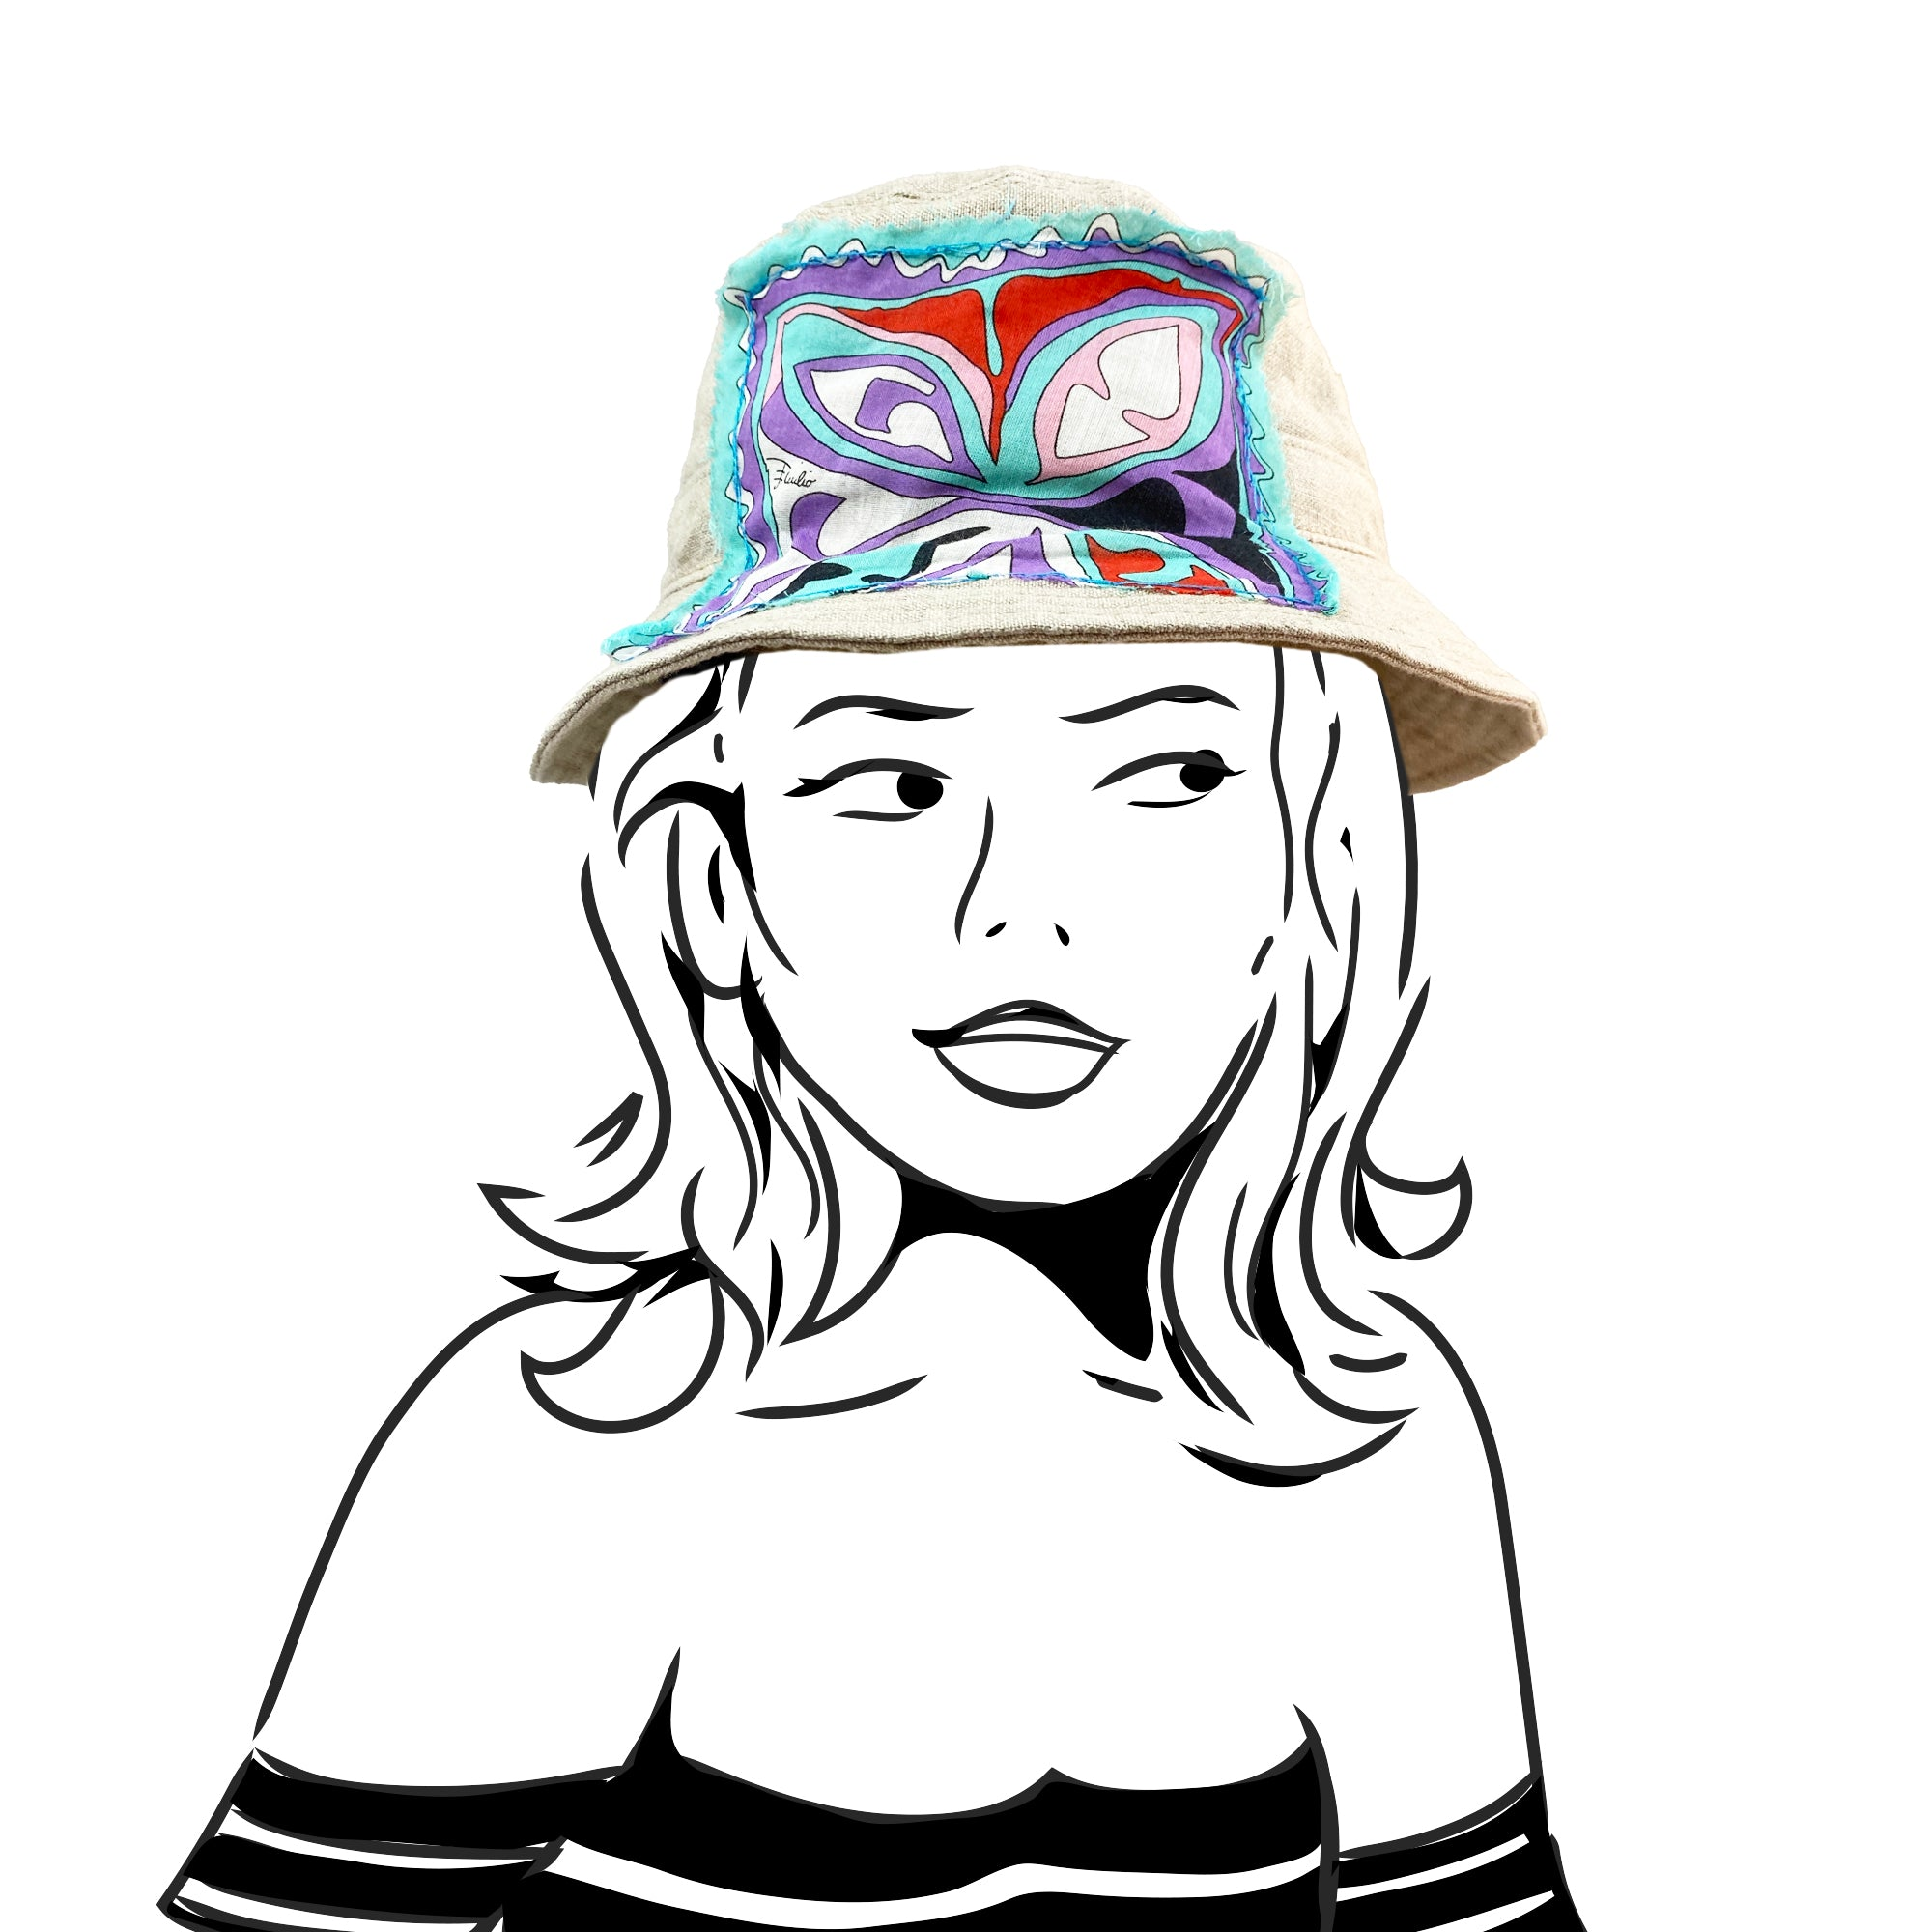 Bucket Hat - Natural Linen with Emilio Pucci Silk - M/L